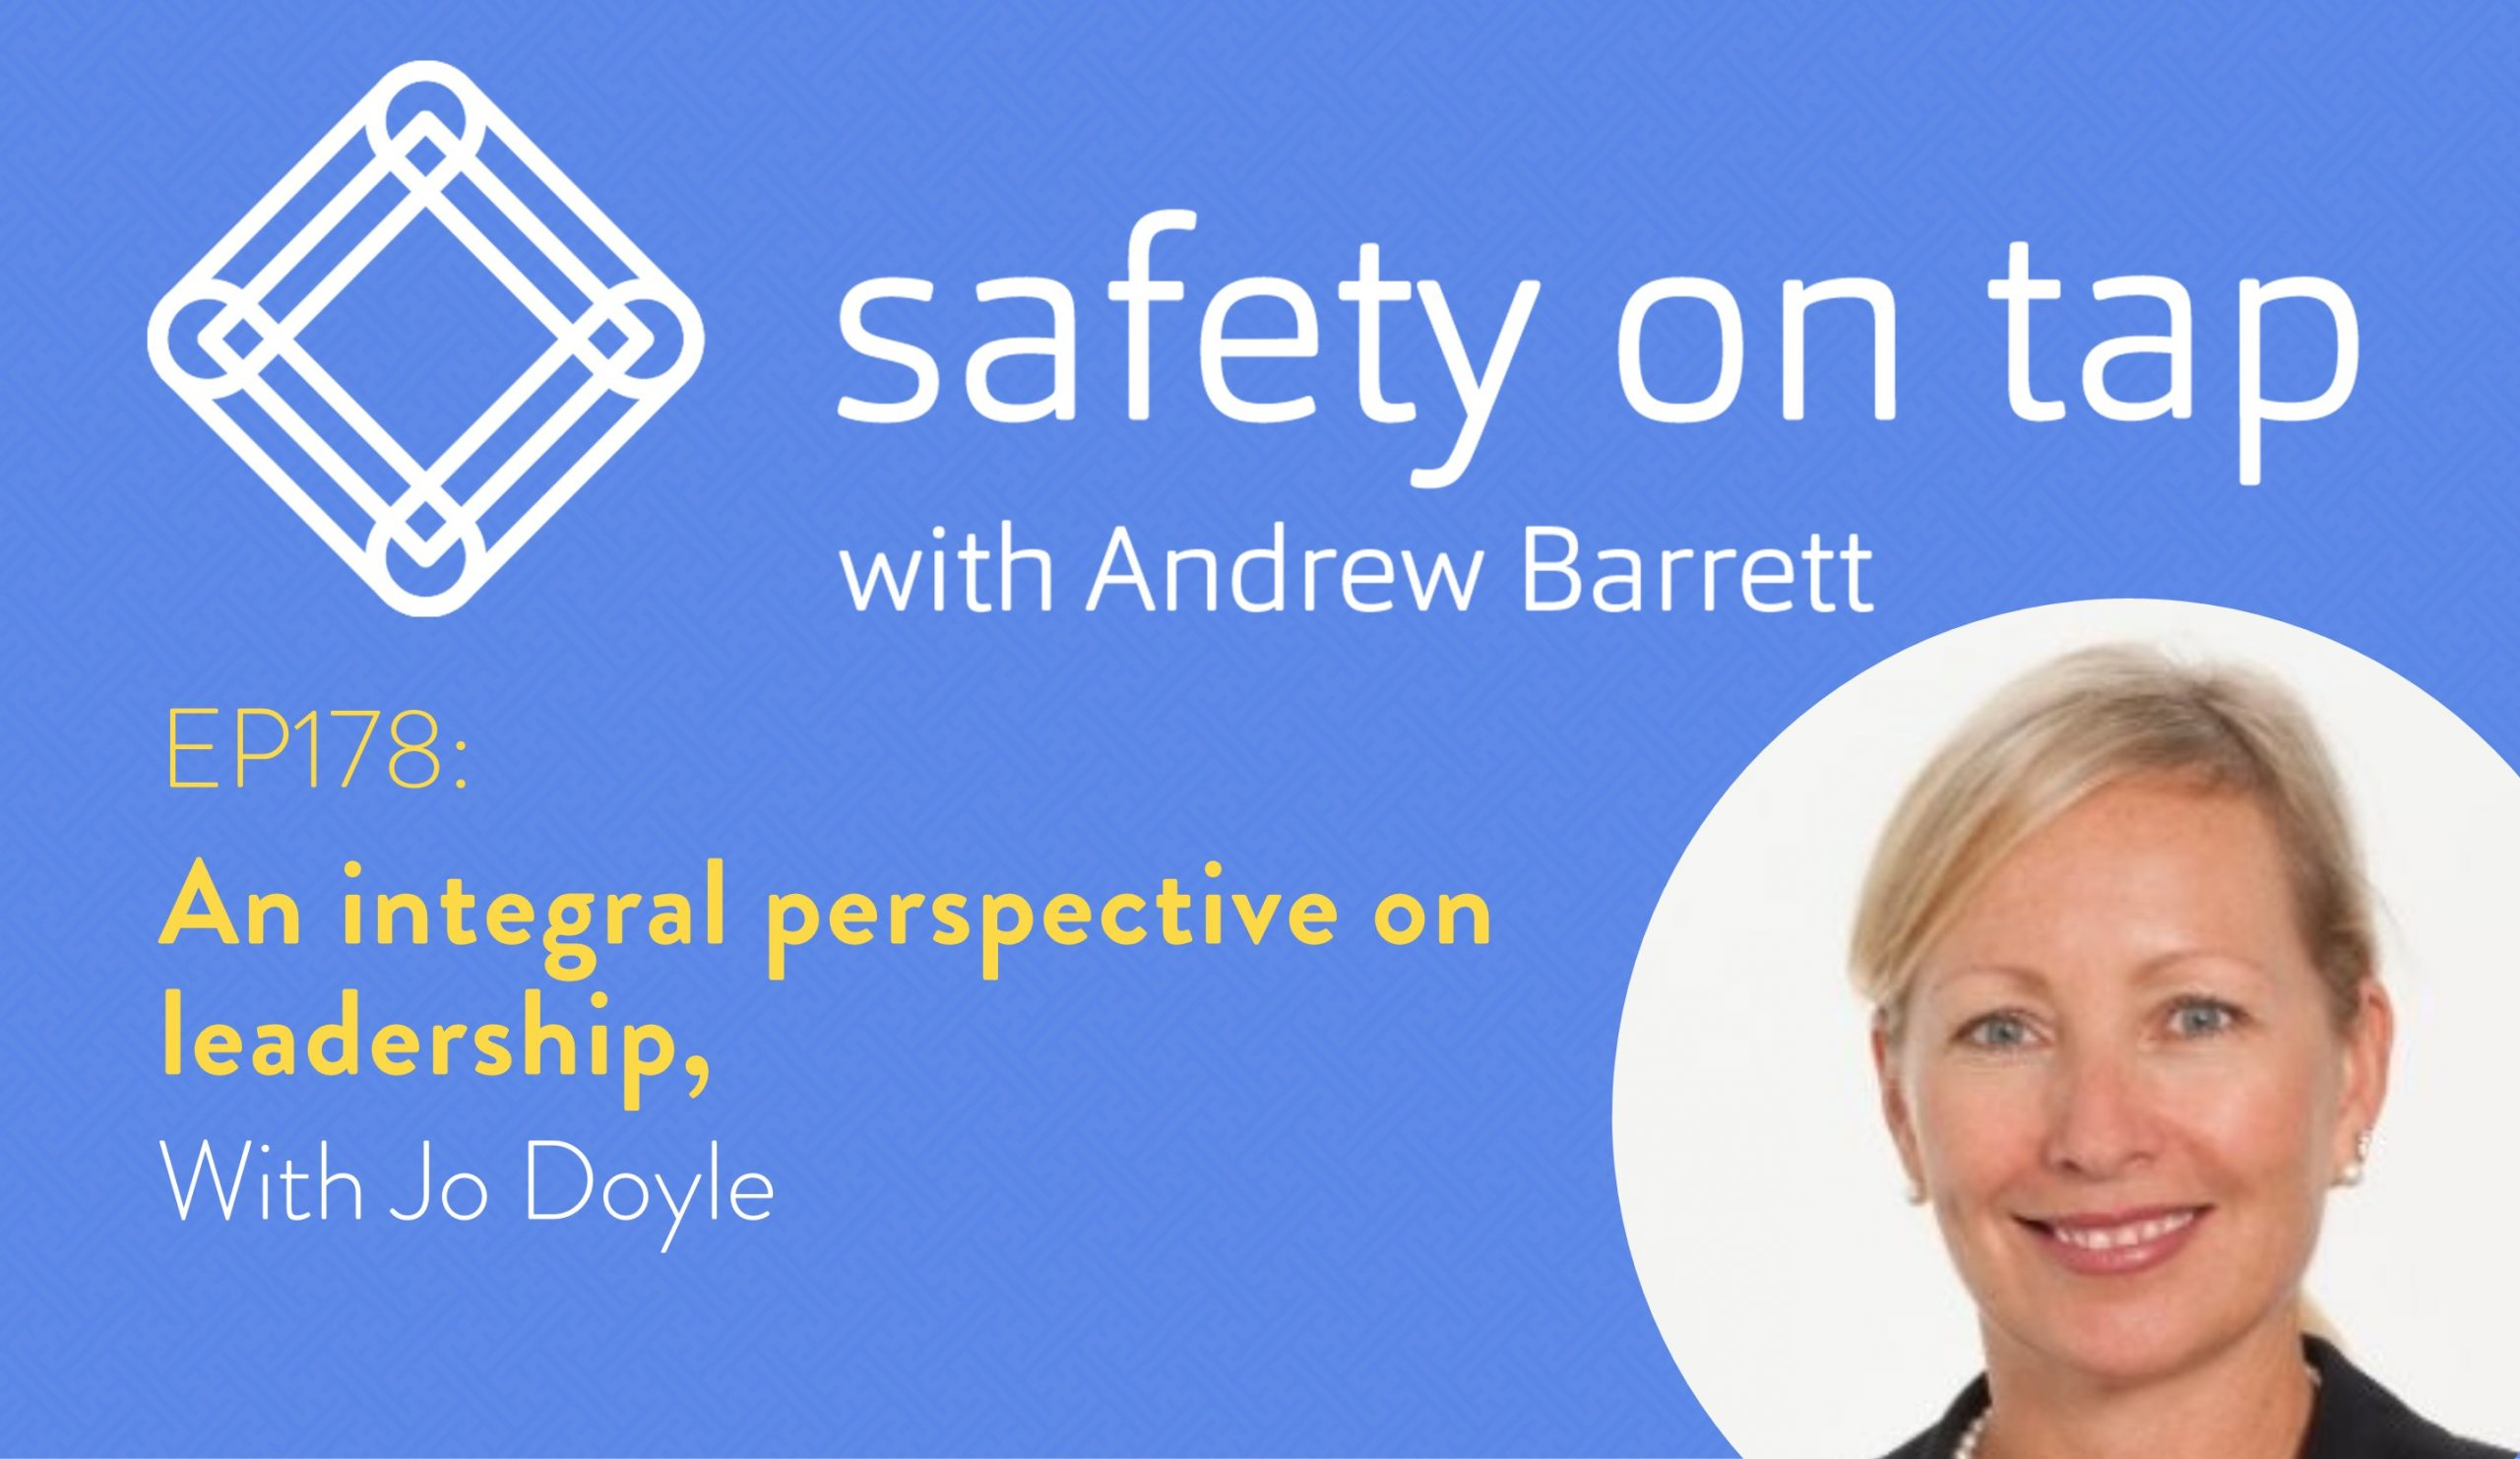 Ep178: An integral perspective on leadership, with Jo Doyle